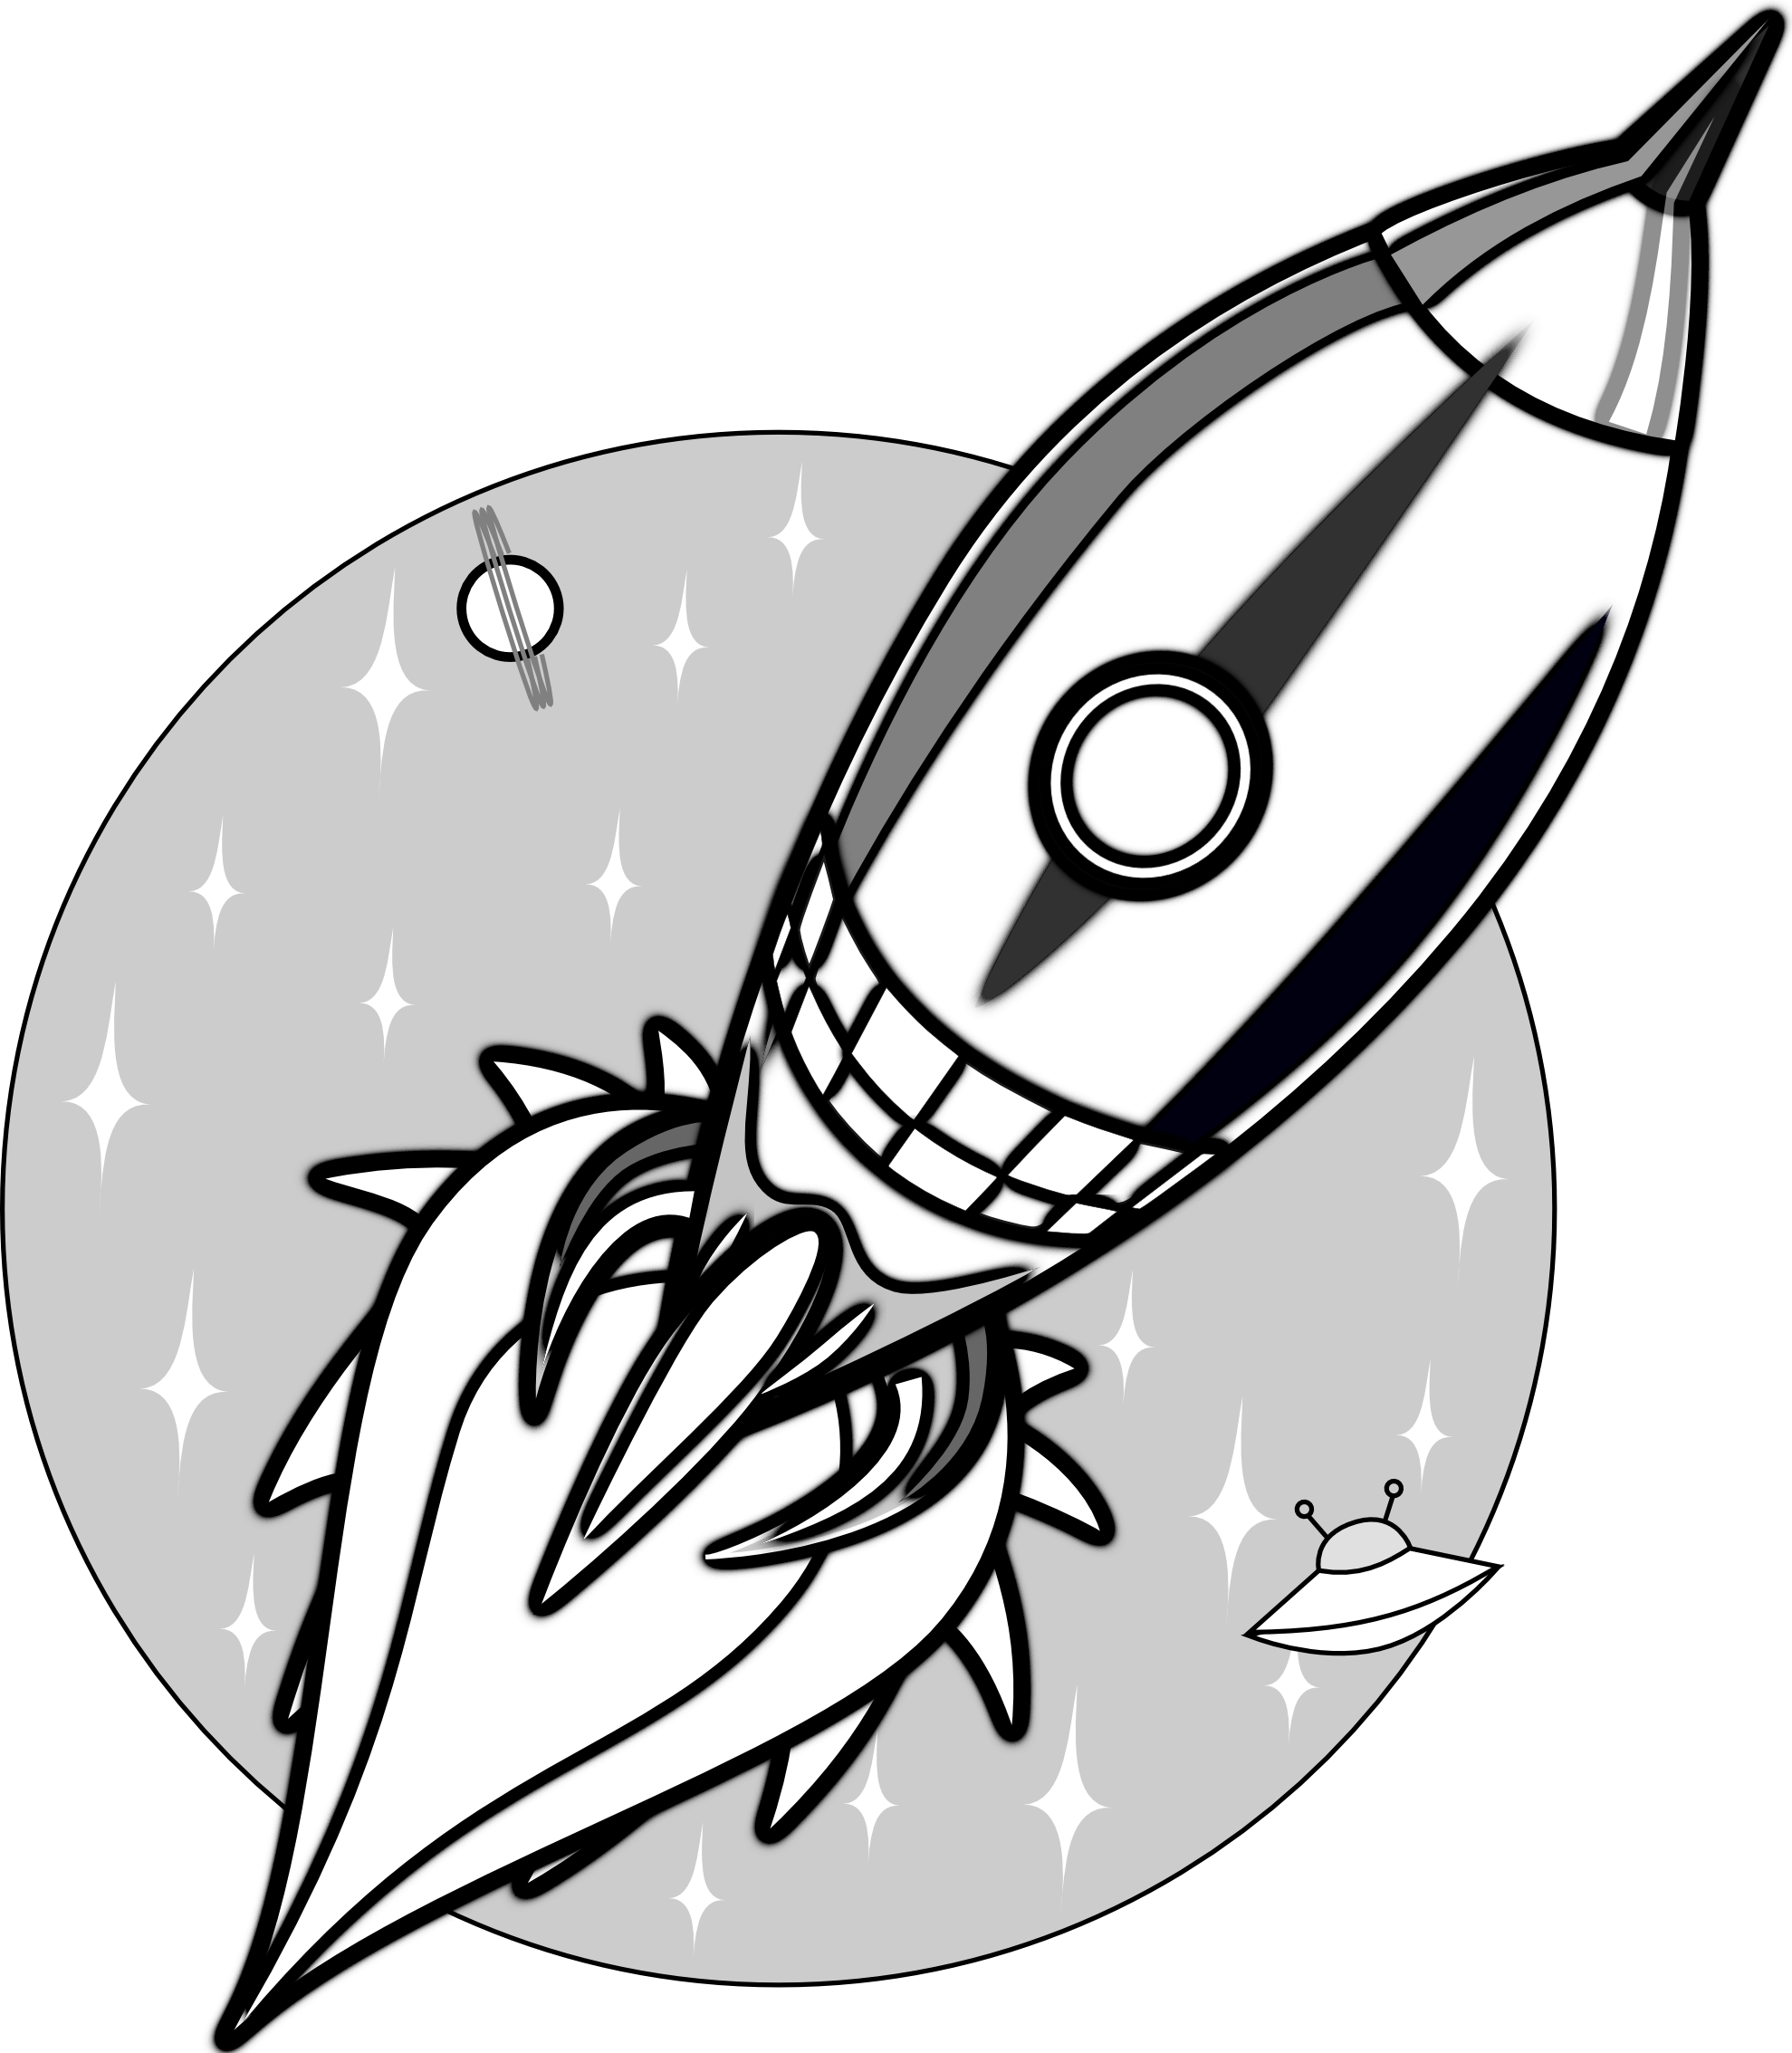 1979x2267 Images For Gt Rocket Clip Art Black And White Rockets